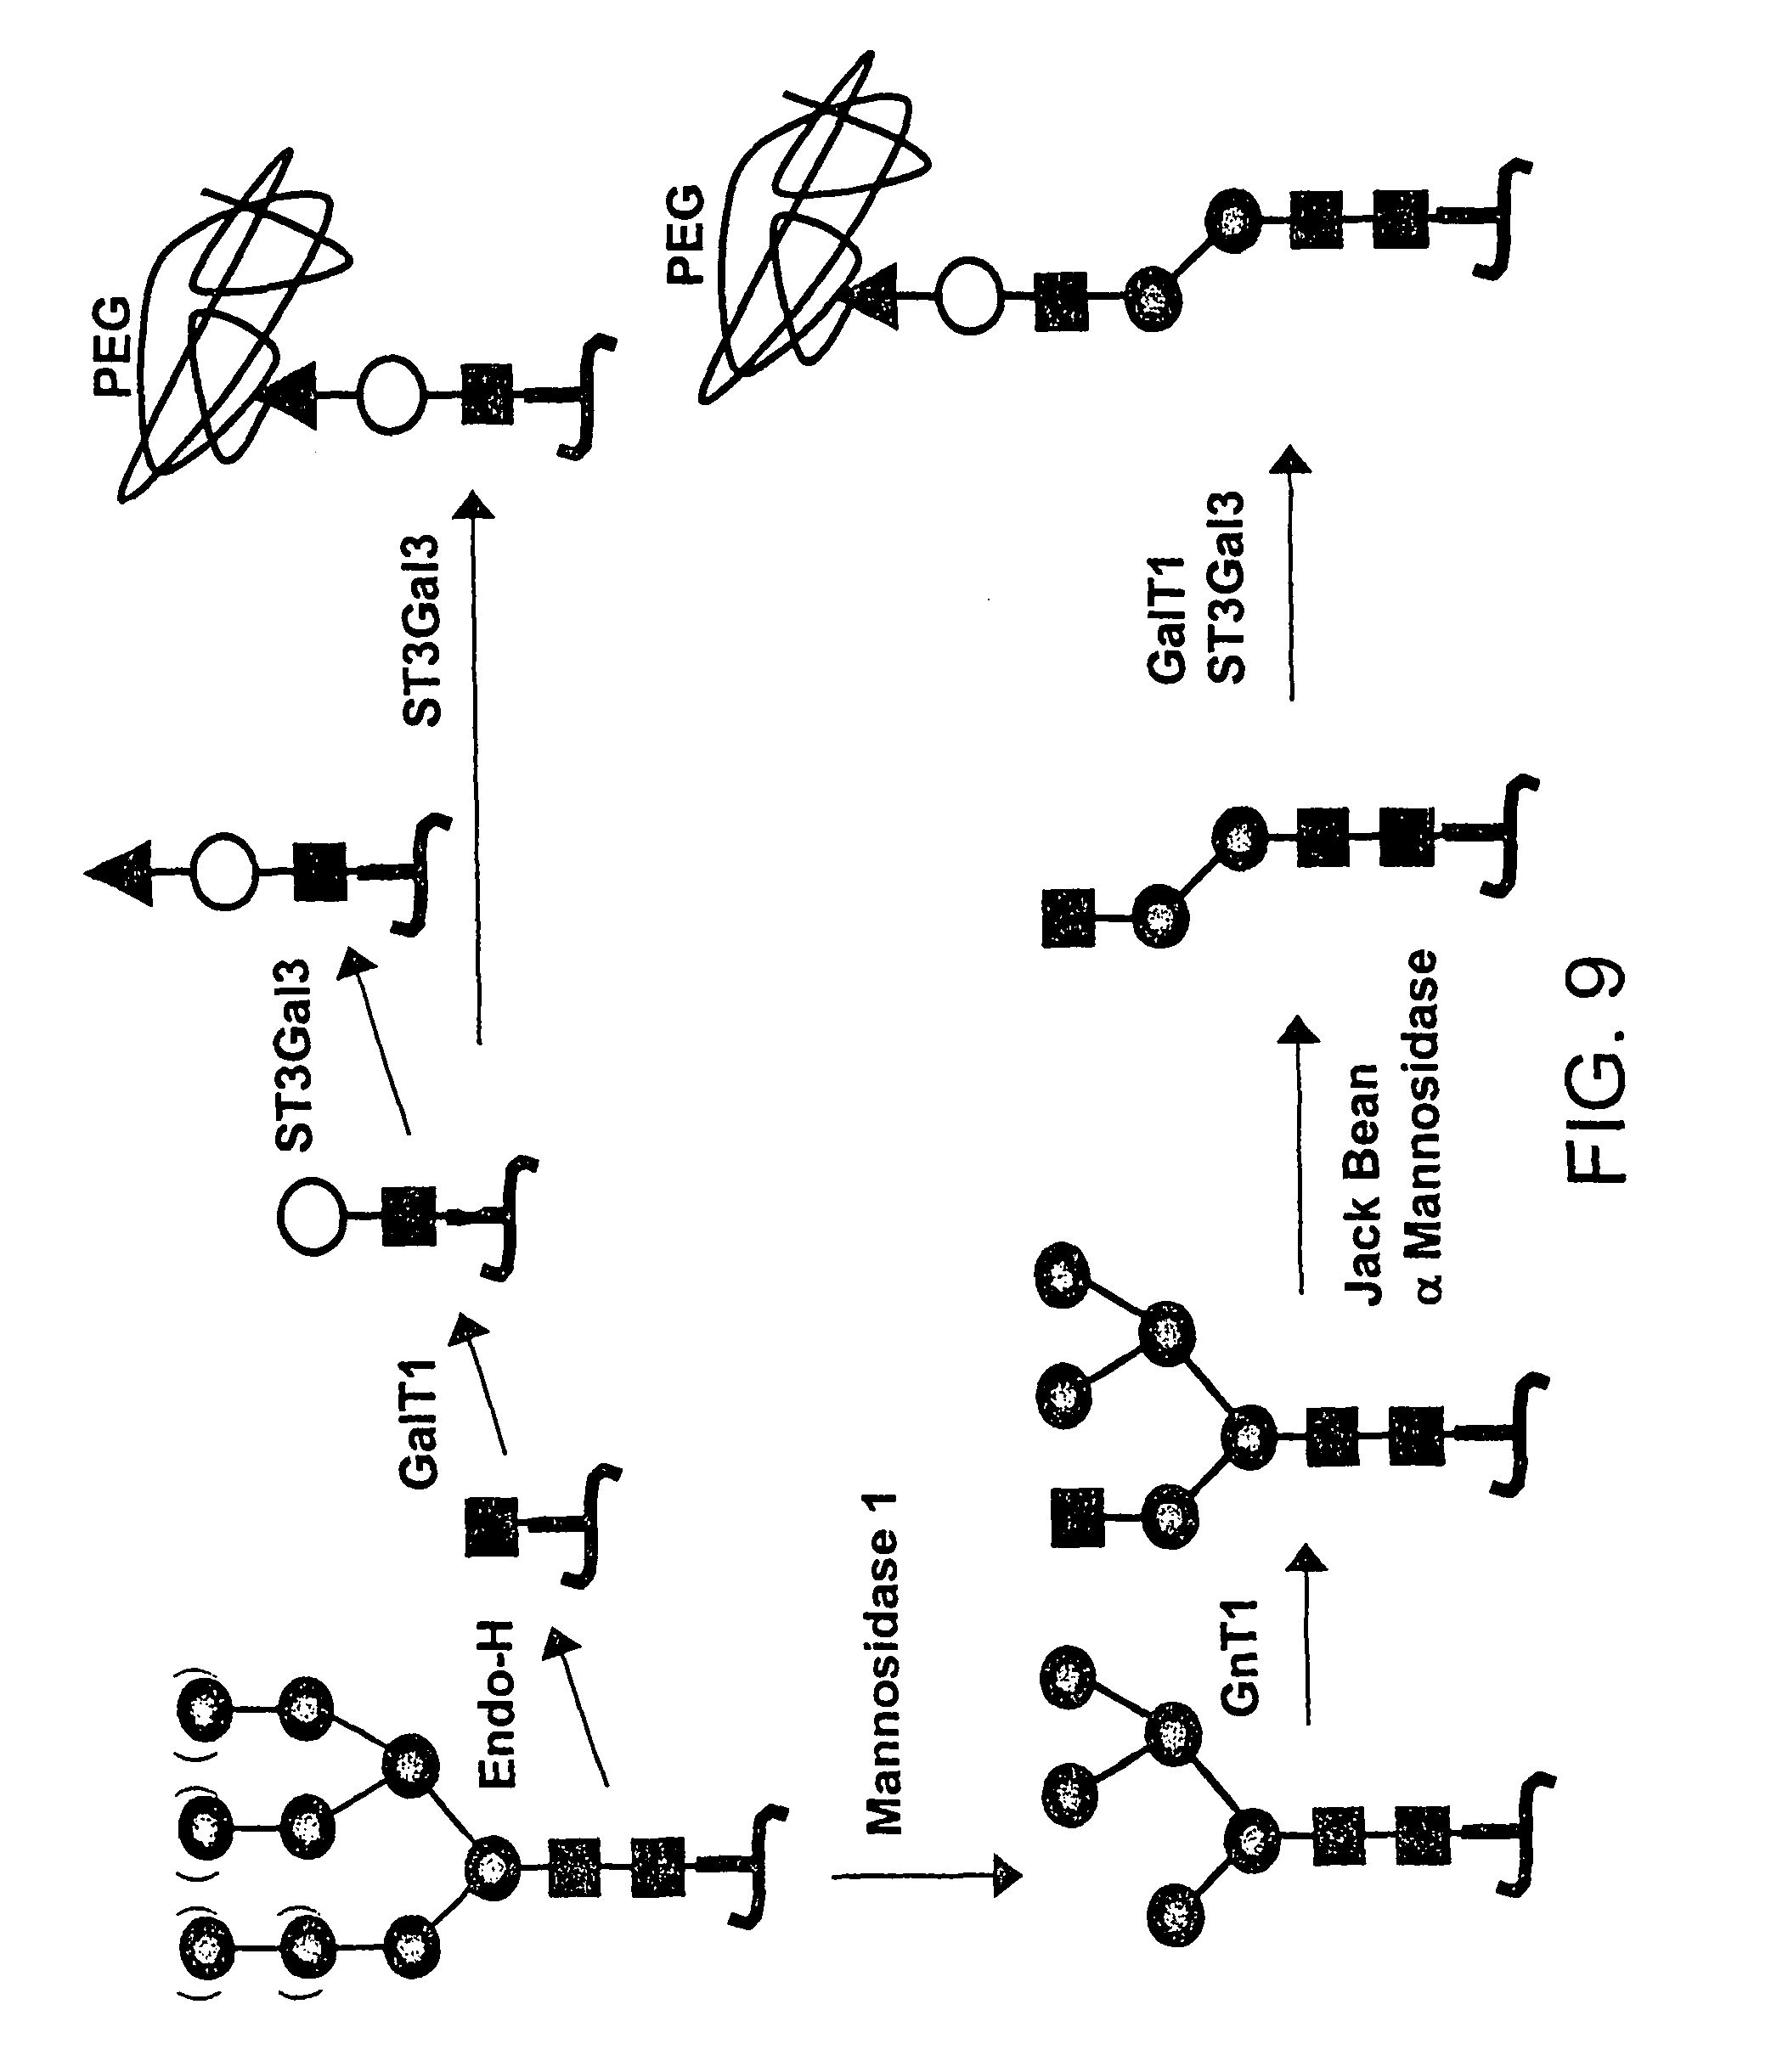 Patent Us 8716240 B2 Back Gt Images For Bean Germination Diagram